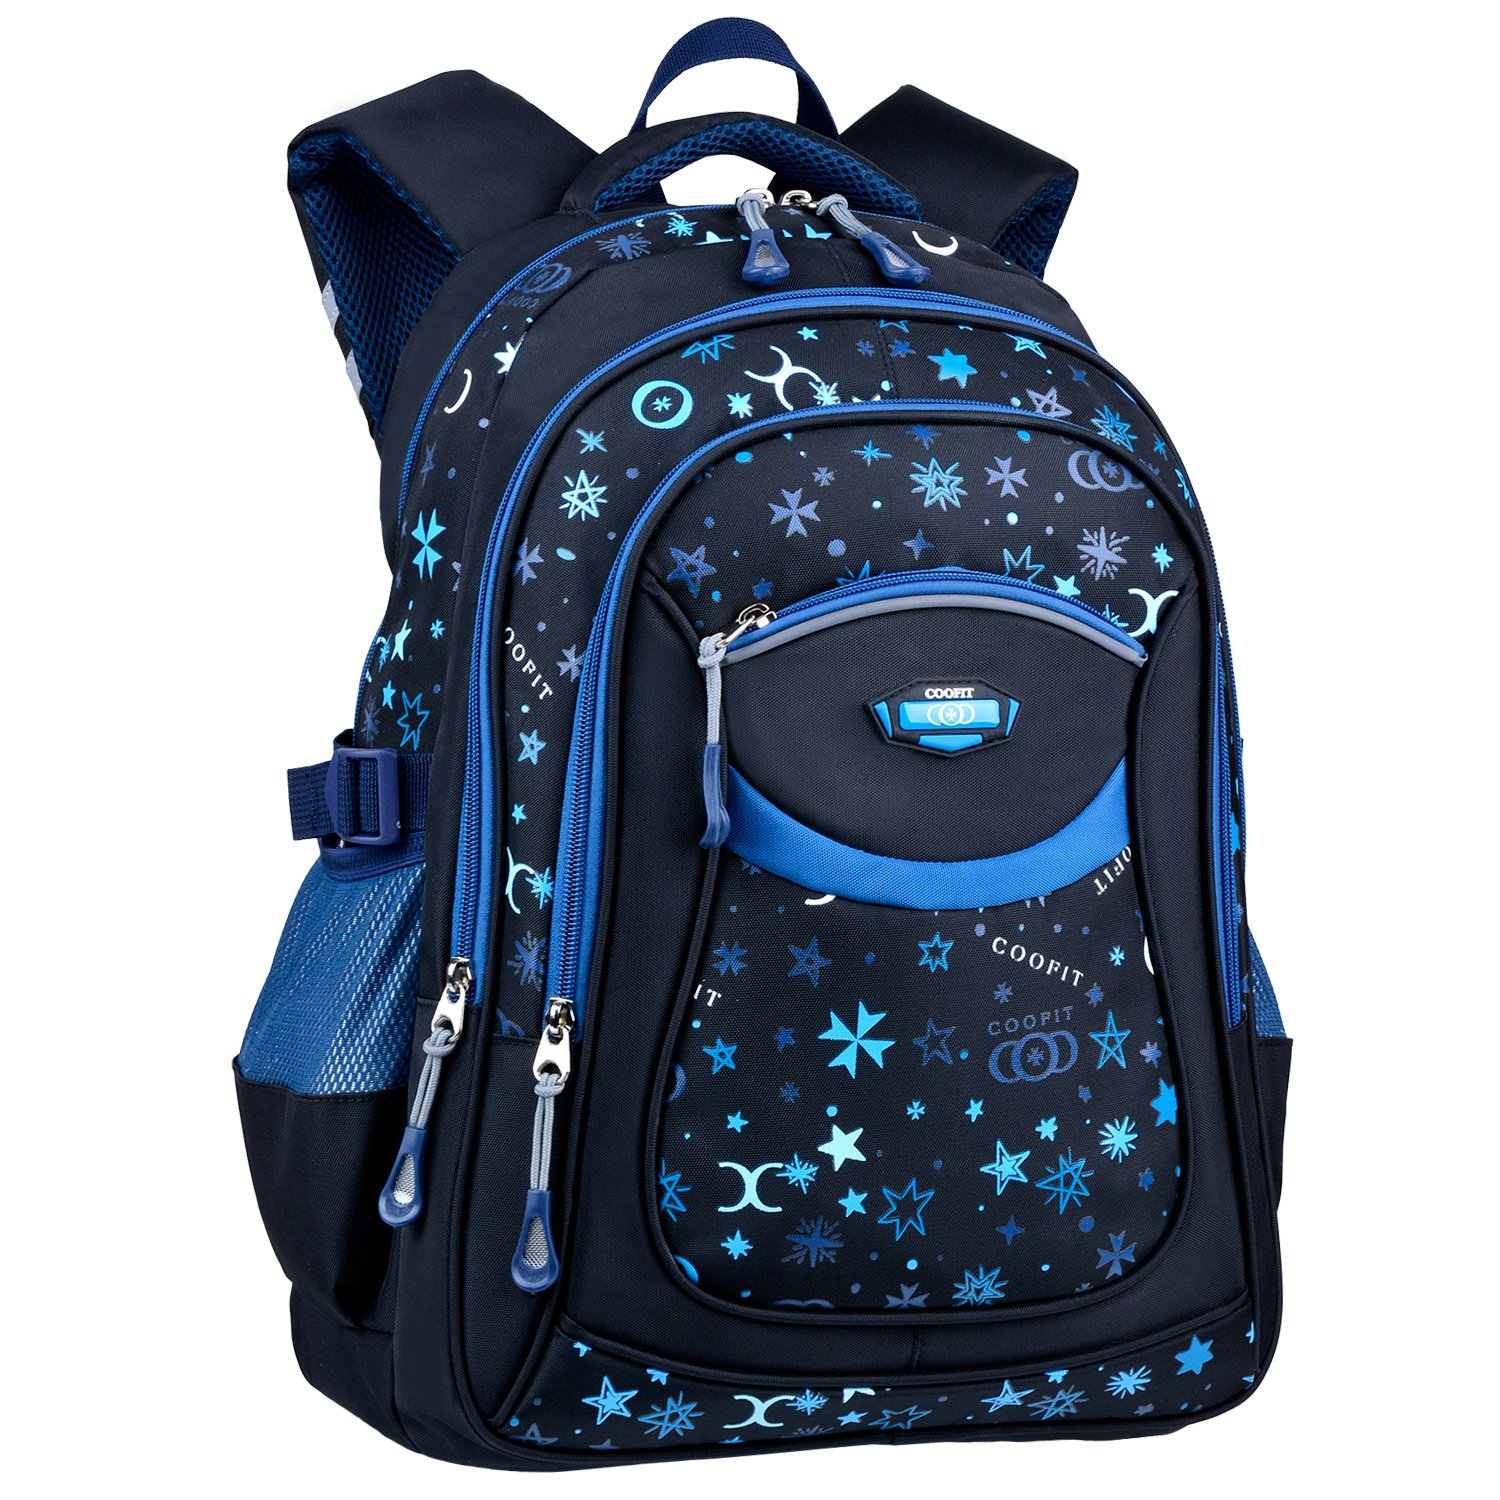 Trendy Backpacks For Middle School- Fenix Toulouse Handball fb0e54d453858